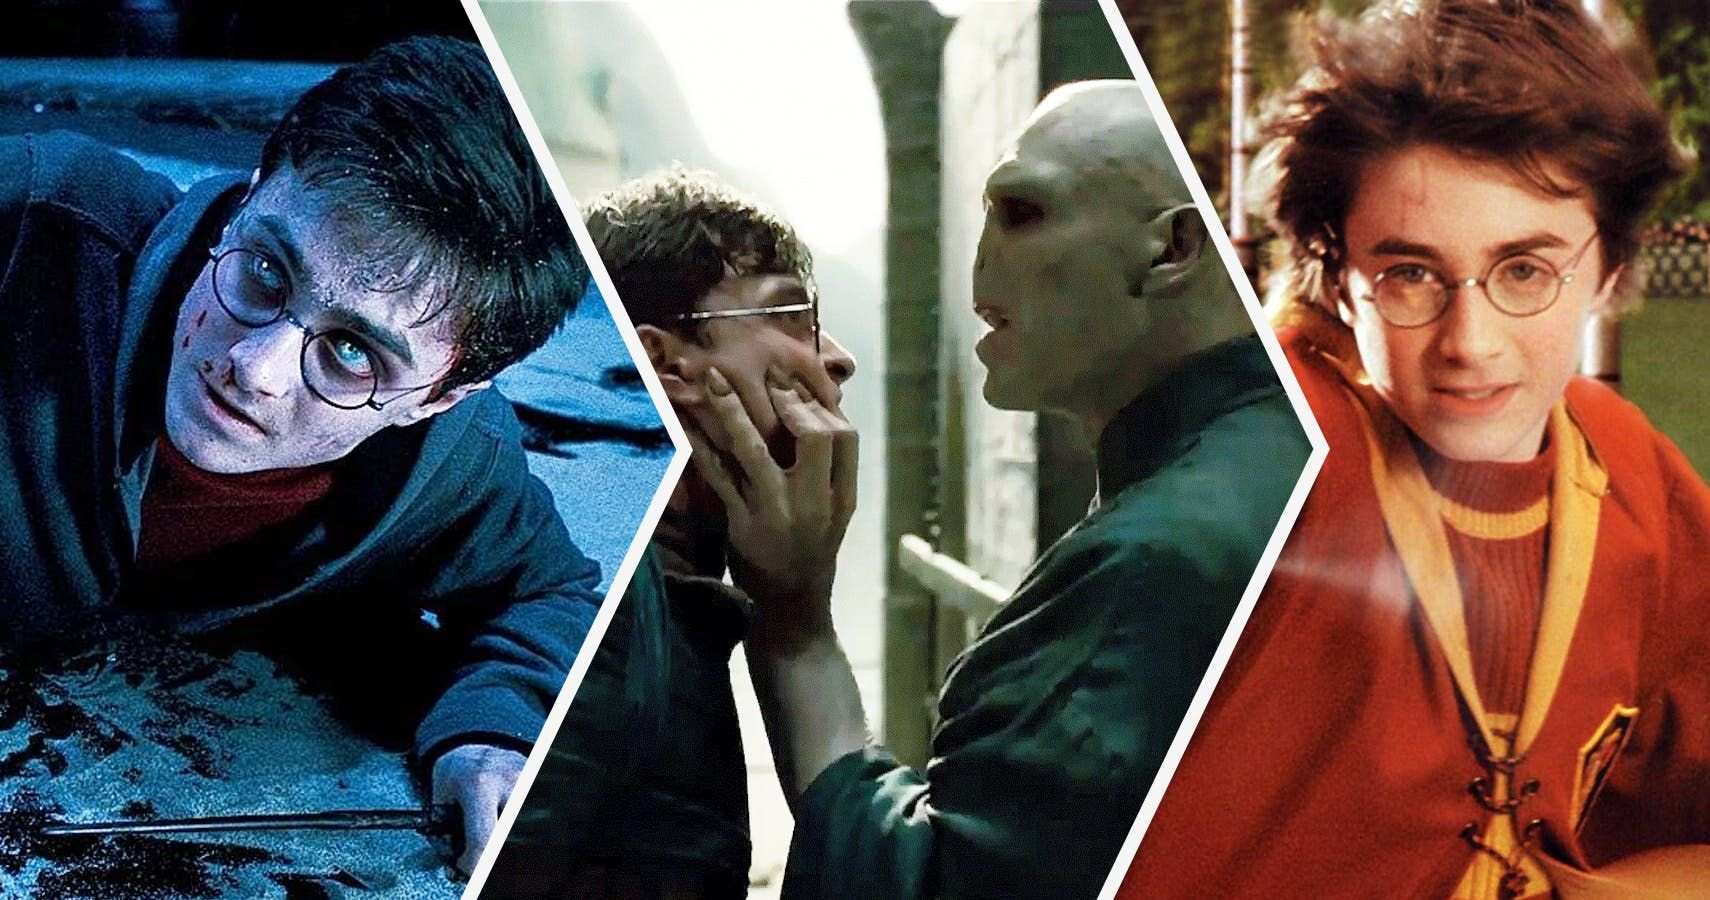 Daniel Radcliffe, who played Harry Potter, was allergic to Harry Potter's iconic glasses.